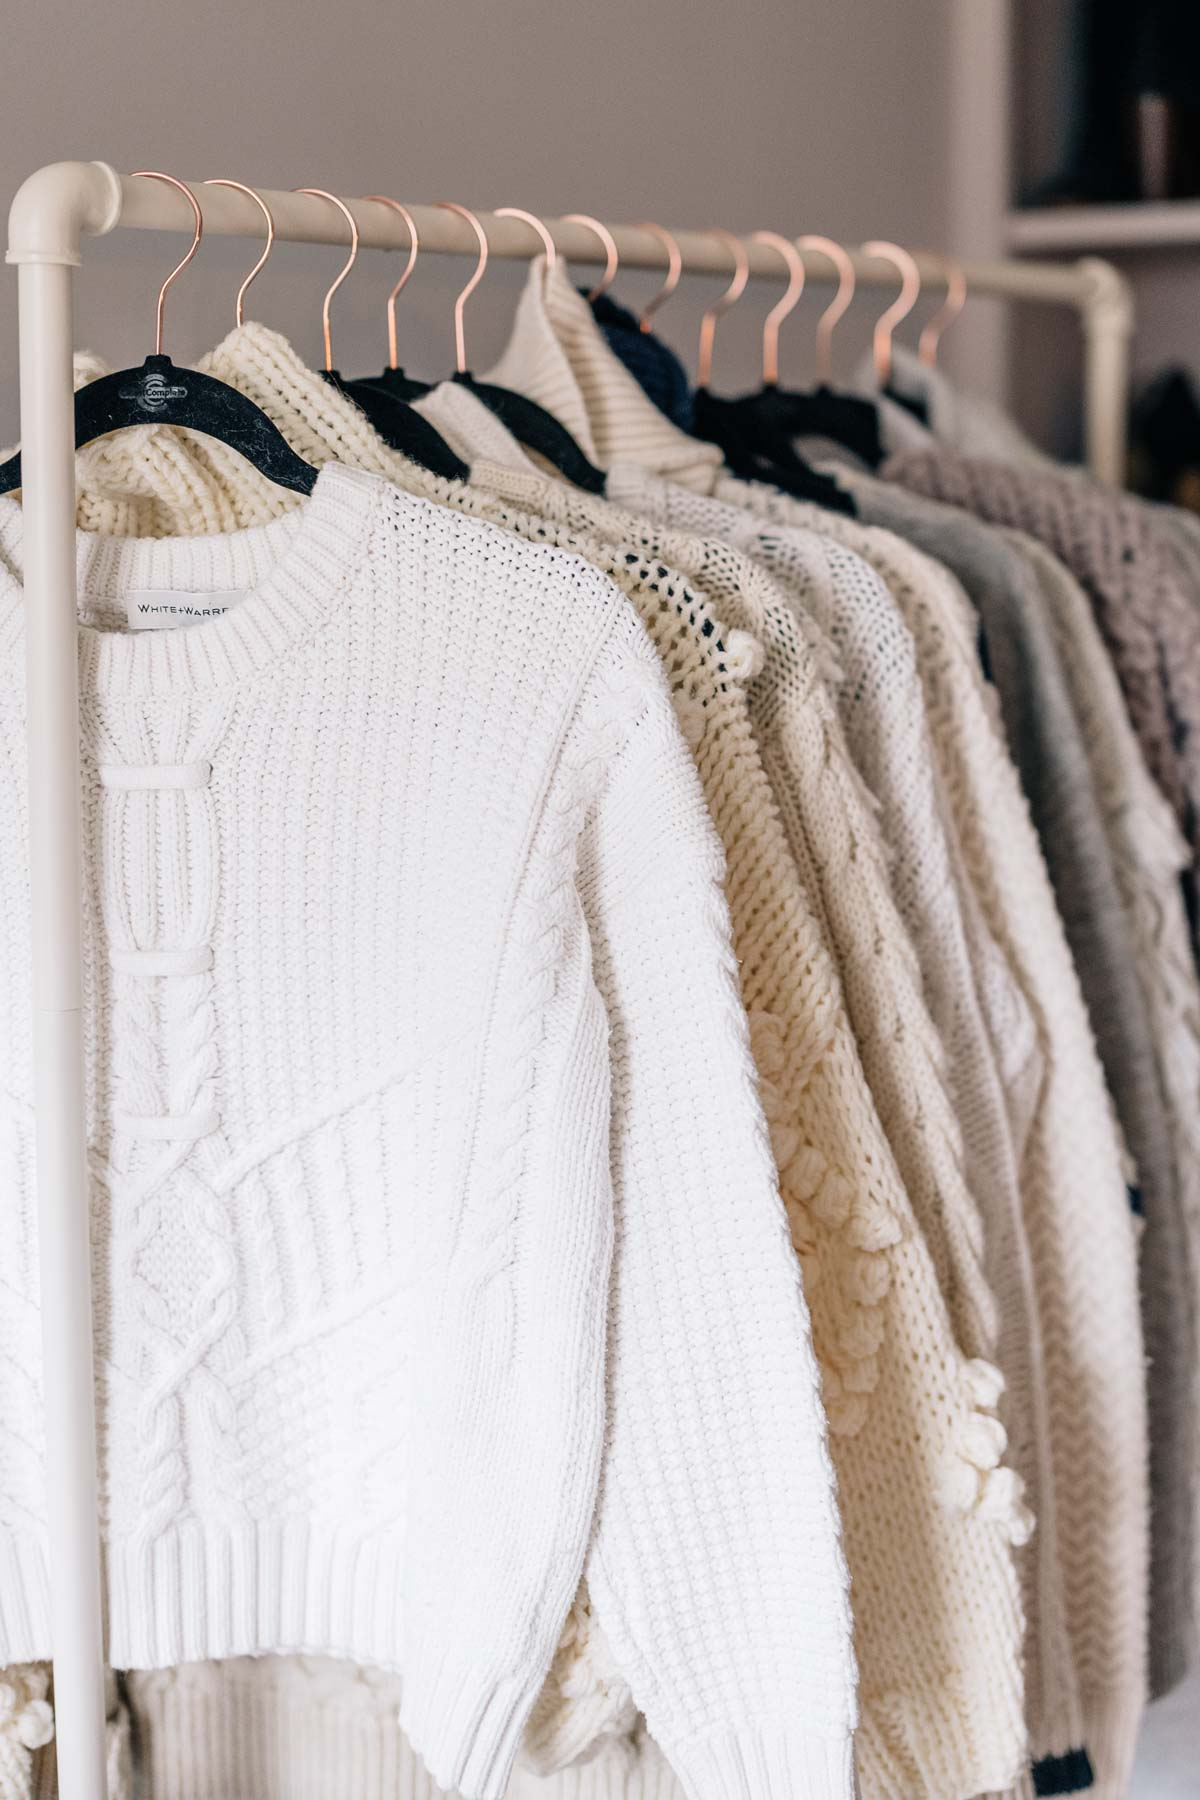 Jess Ann Kirby's chunky knit selection hangs beautifully thanks to her easy sweater-care tips